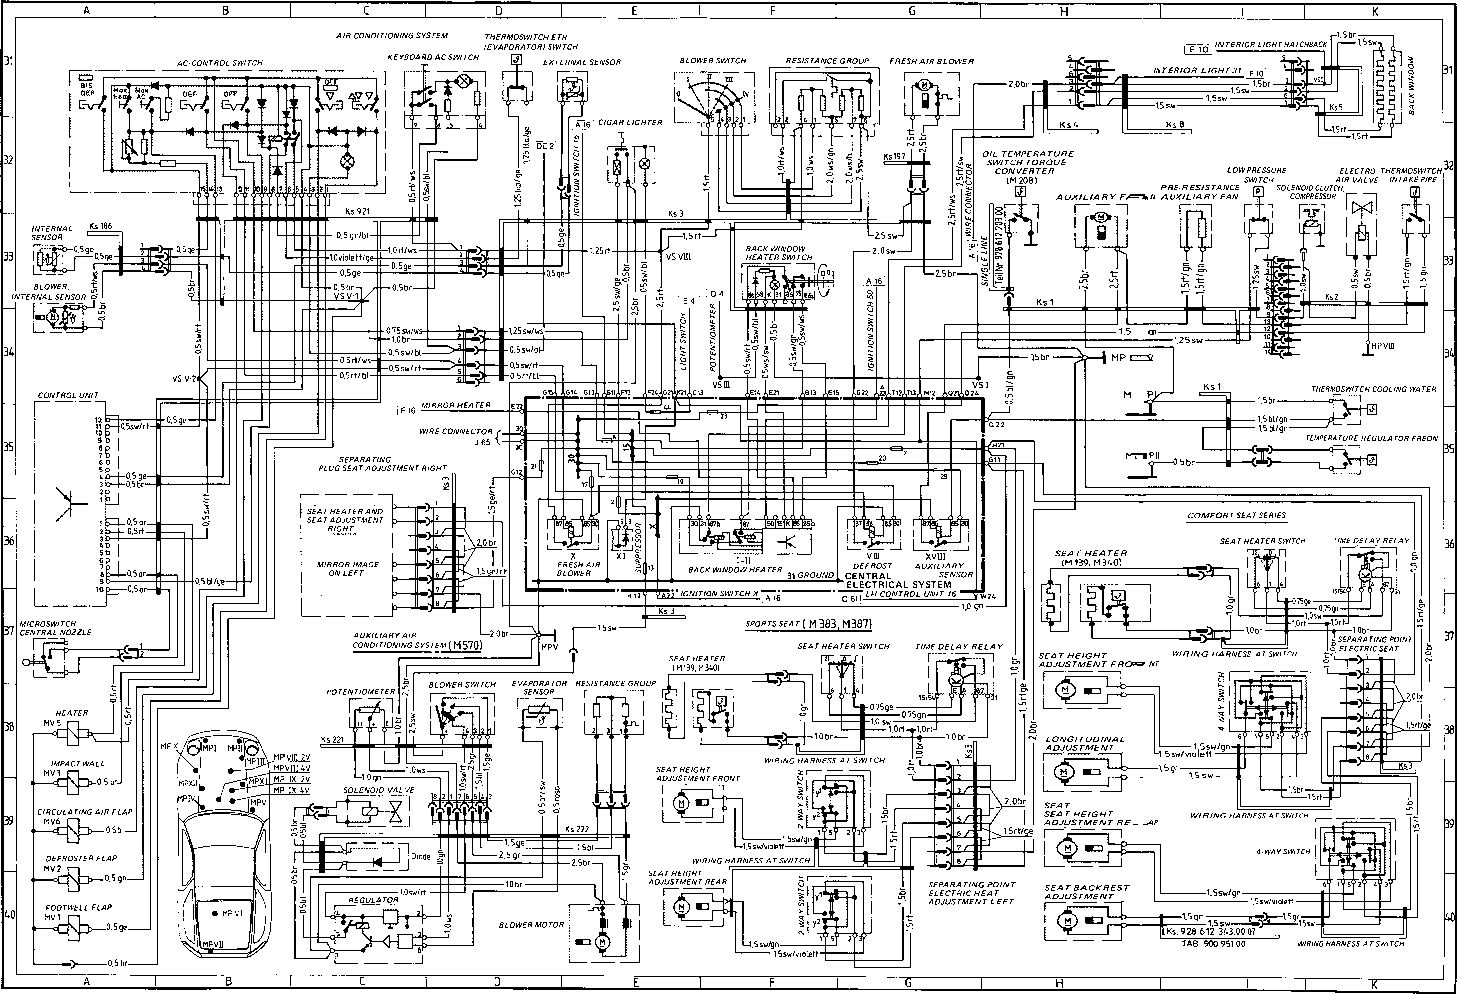 924boardorg View Topic How To Read 924 Wiring Diagrams - Wire Data ...